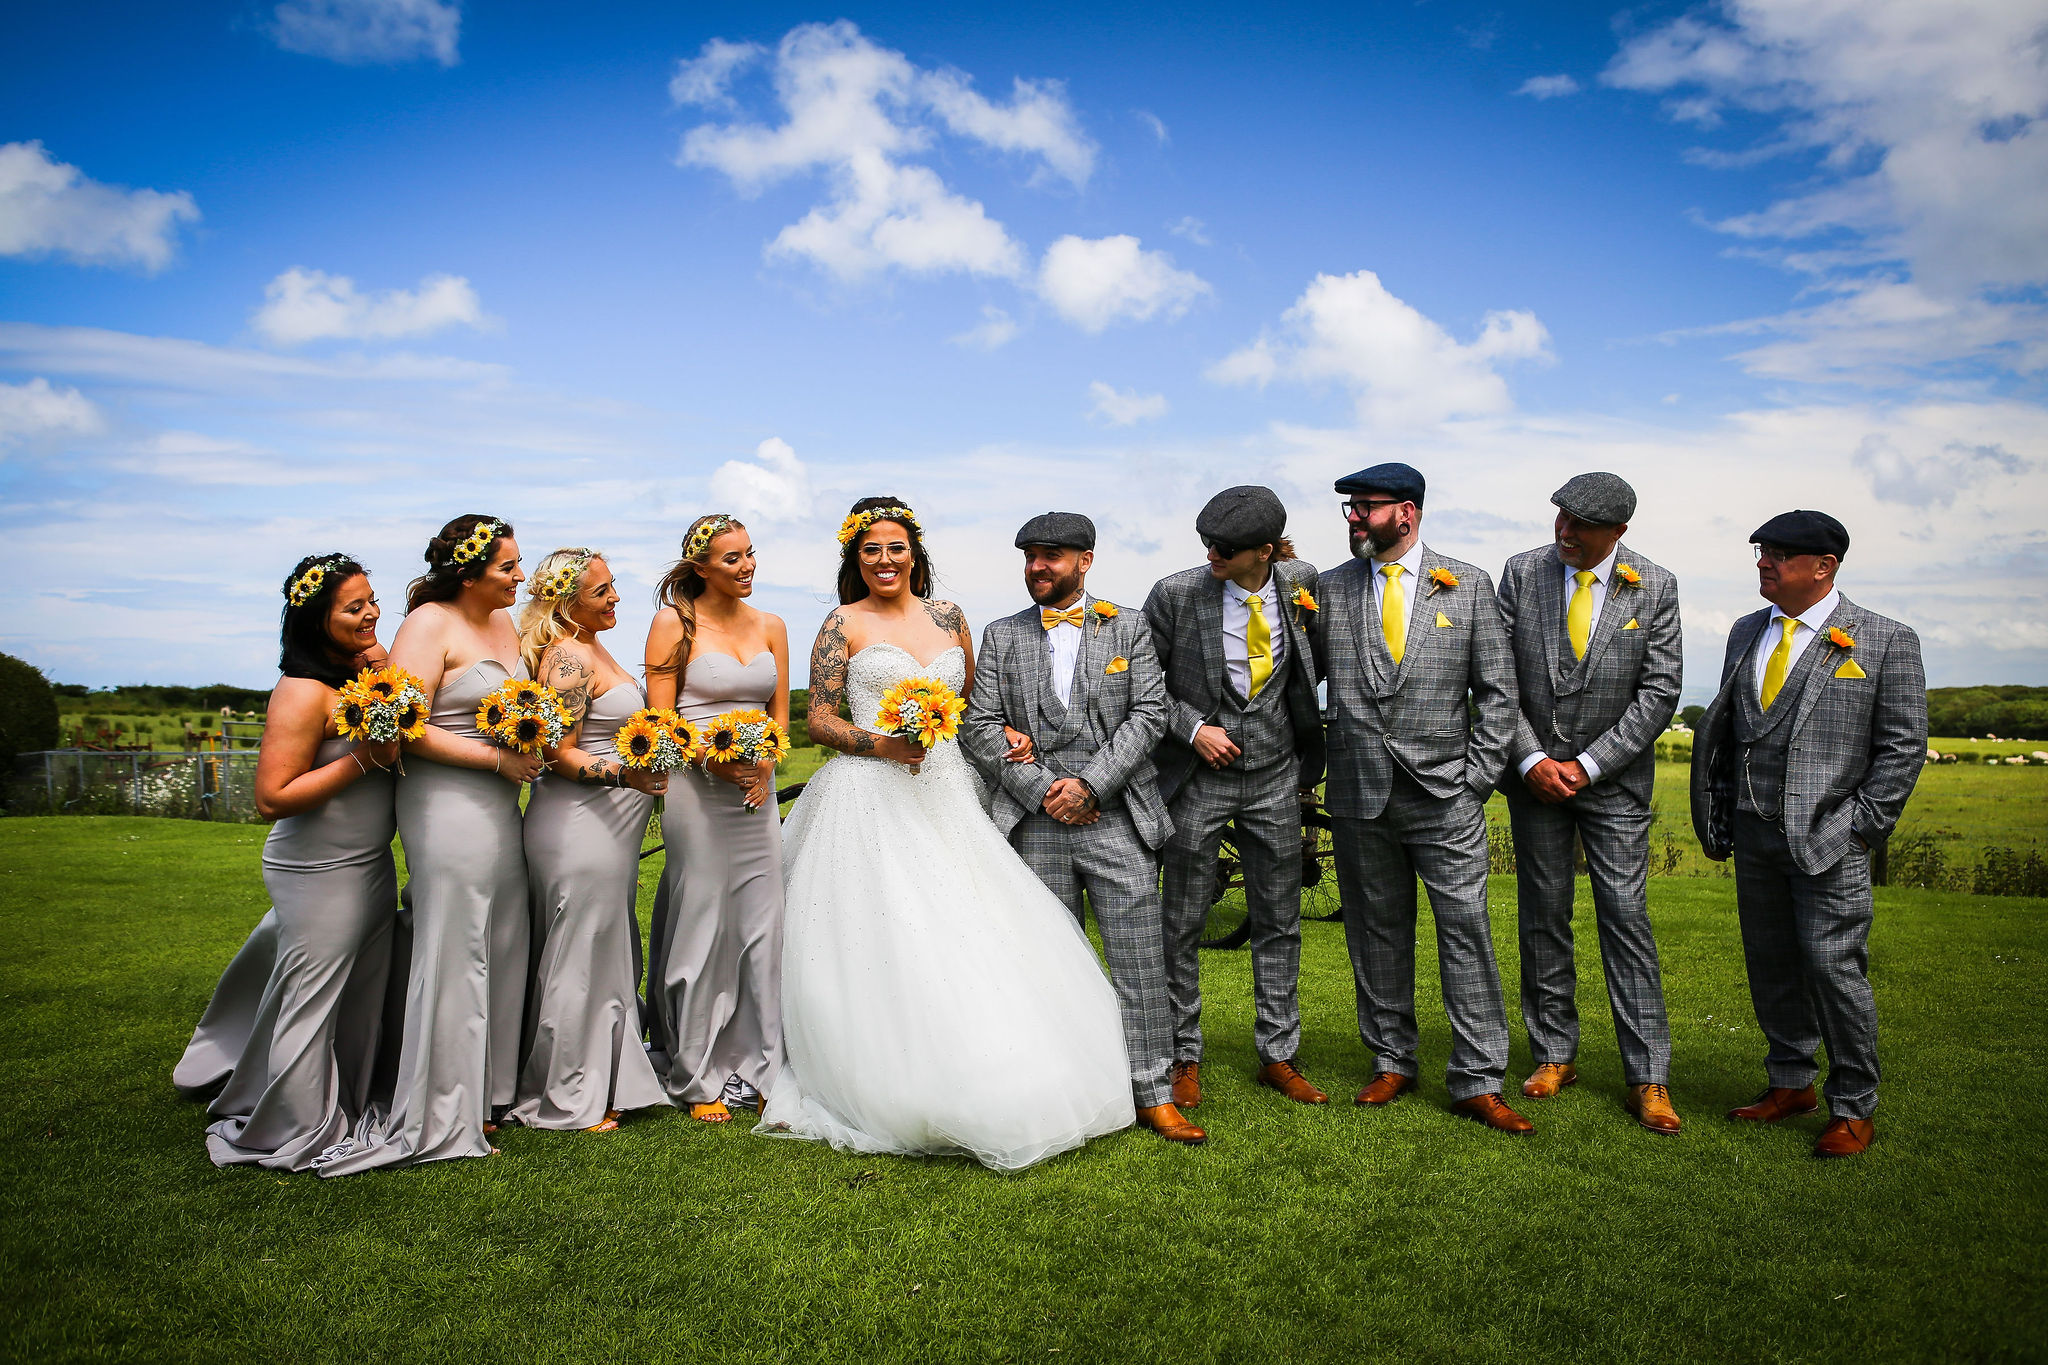 Harriet&Rhys Wedding - Magical sunflower wedding - bridal party show with sunflowers